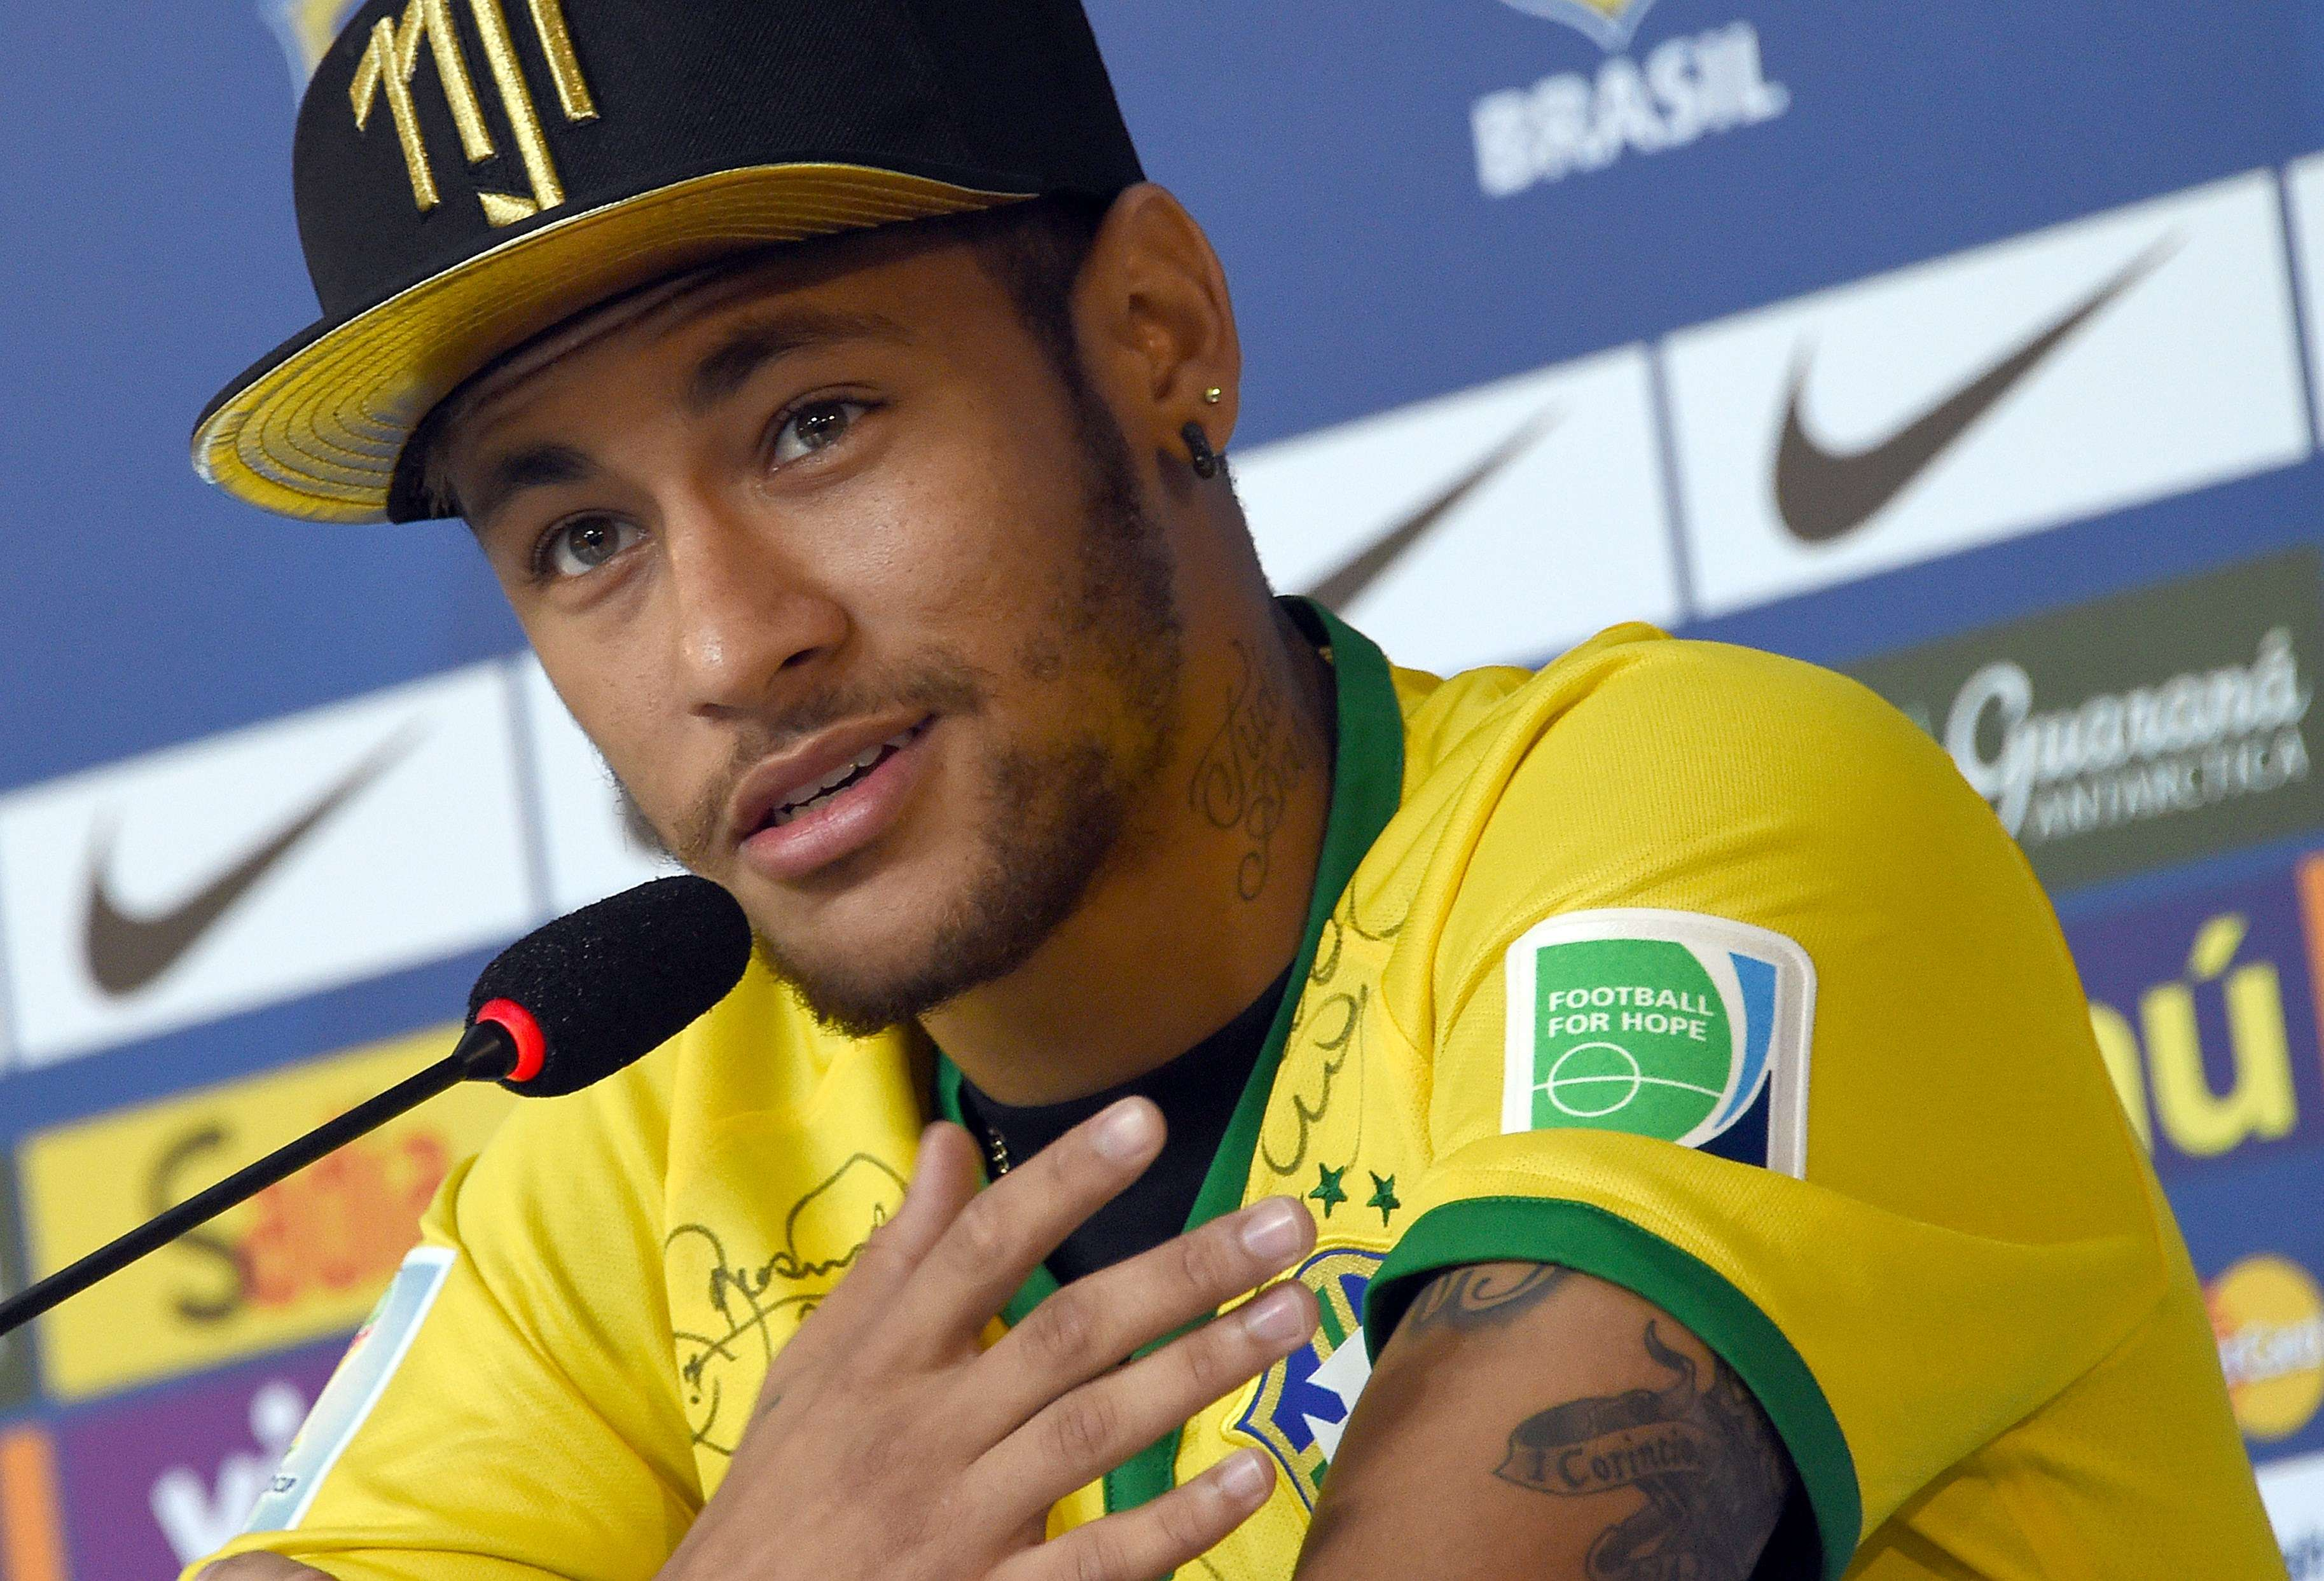 Neymar thankful he's not in a wheelchair